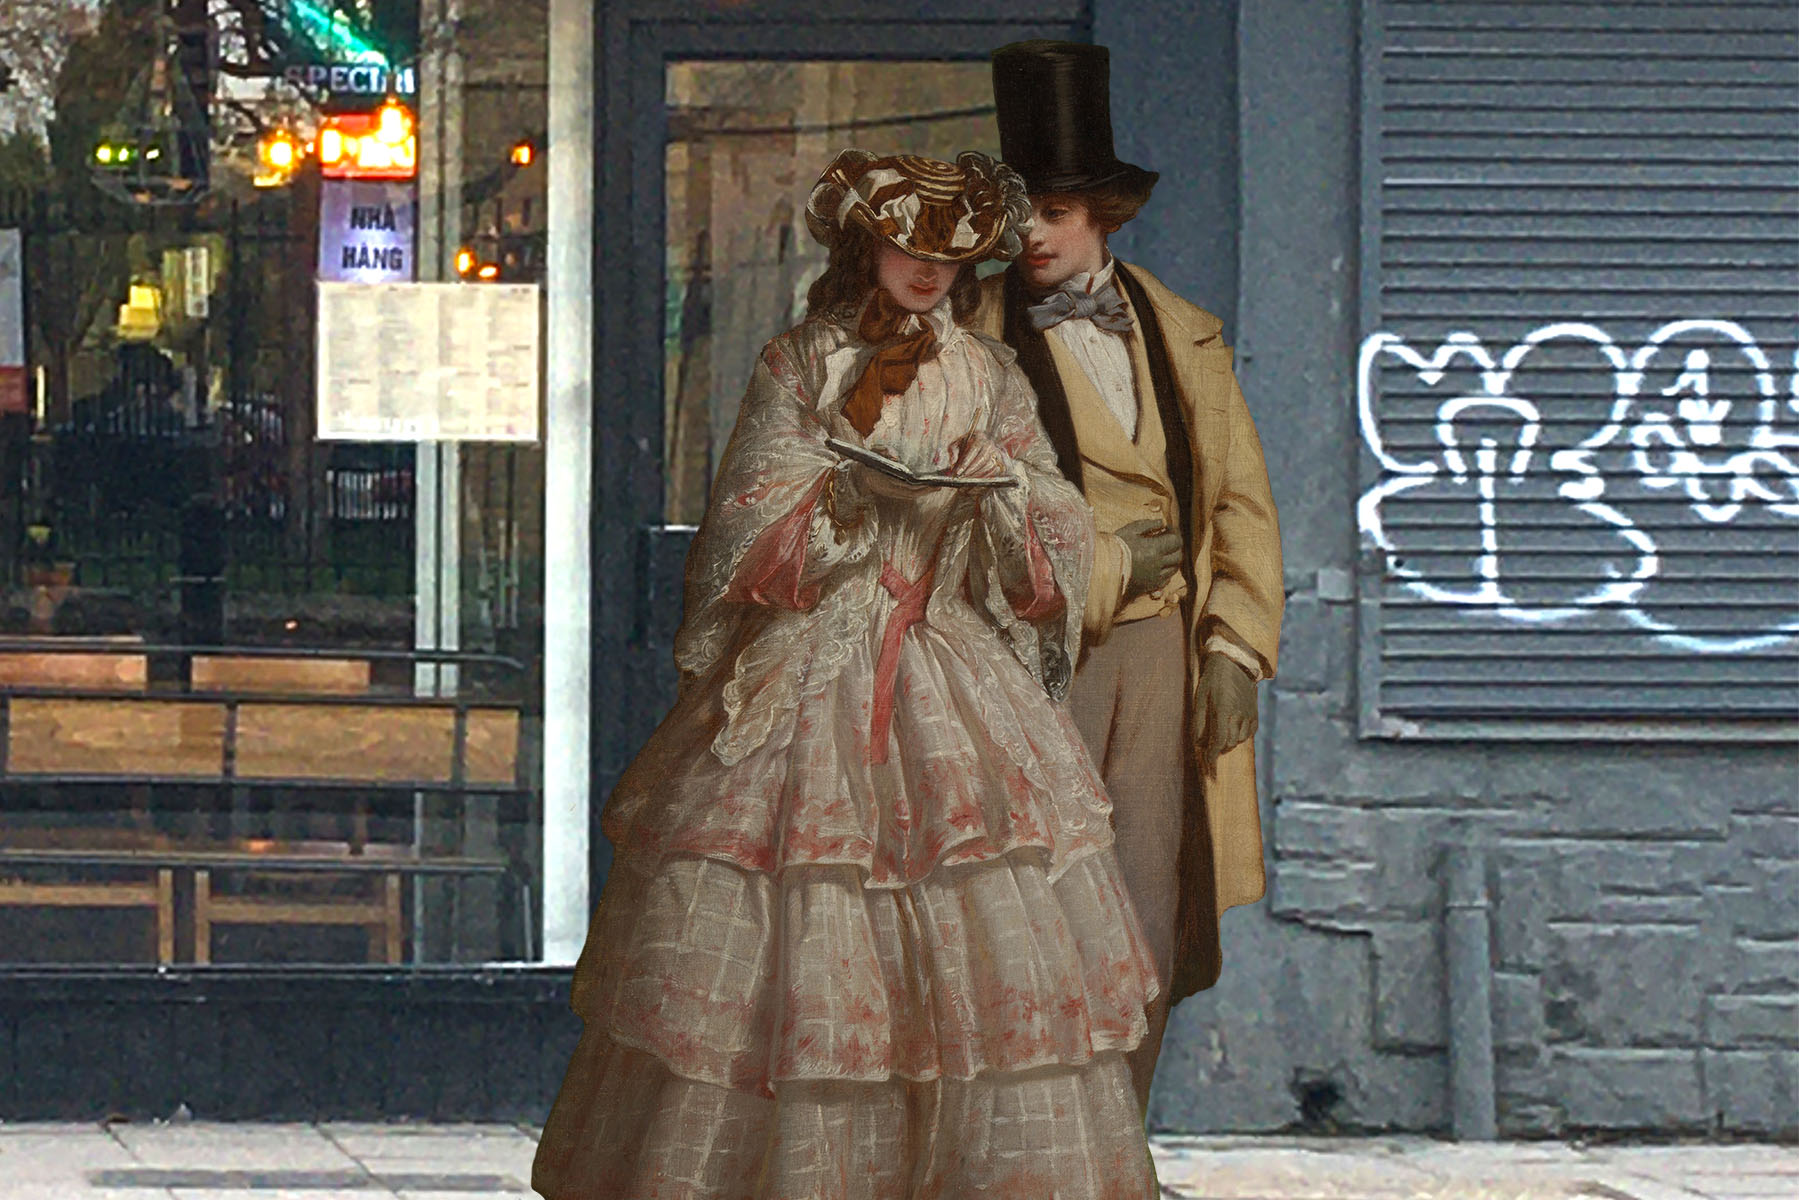 """William Powell Frith's """"The Two Main Figures from 'The Derby Day'"""" (1860) in front of Eat Vietnam bar-b-grill on Evelyn Street, Deptford"""